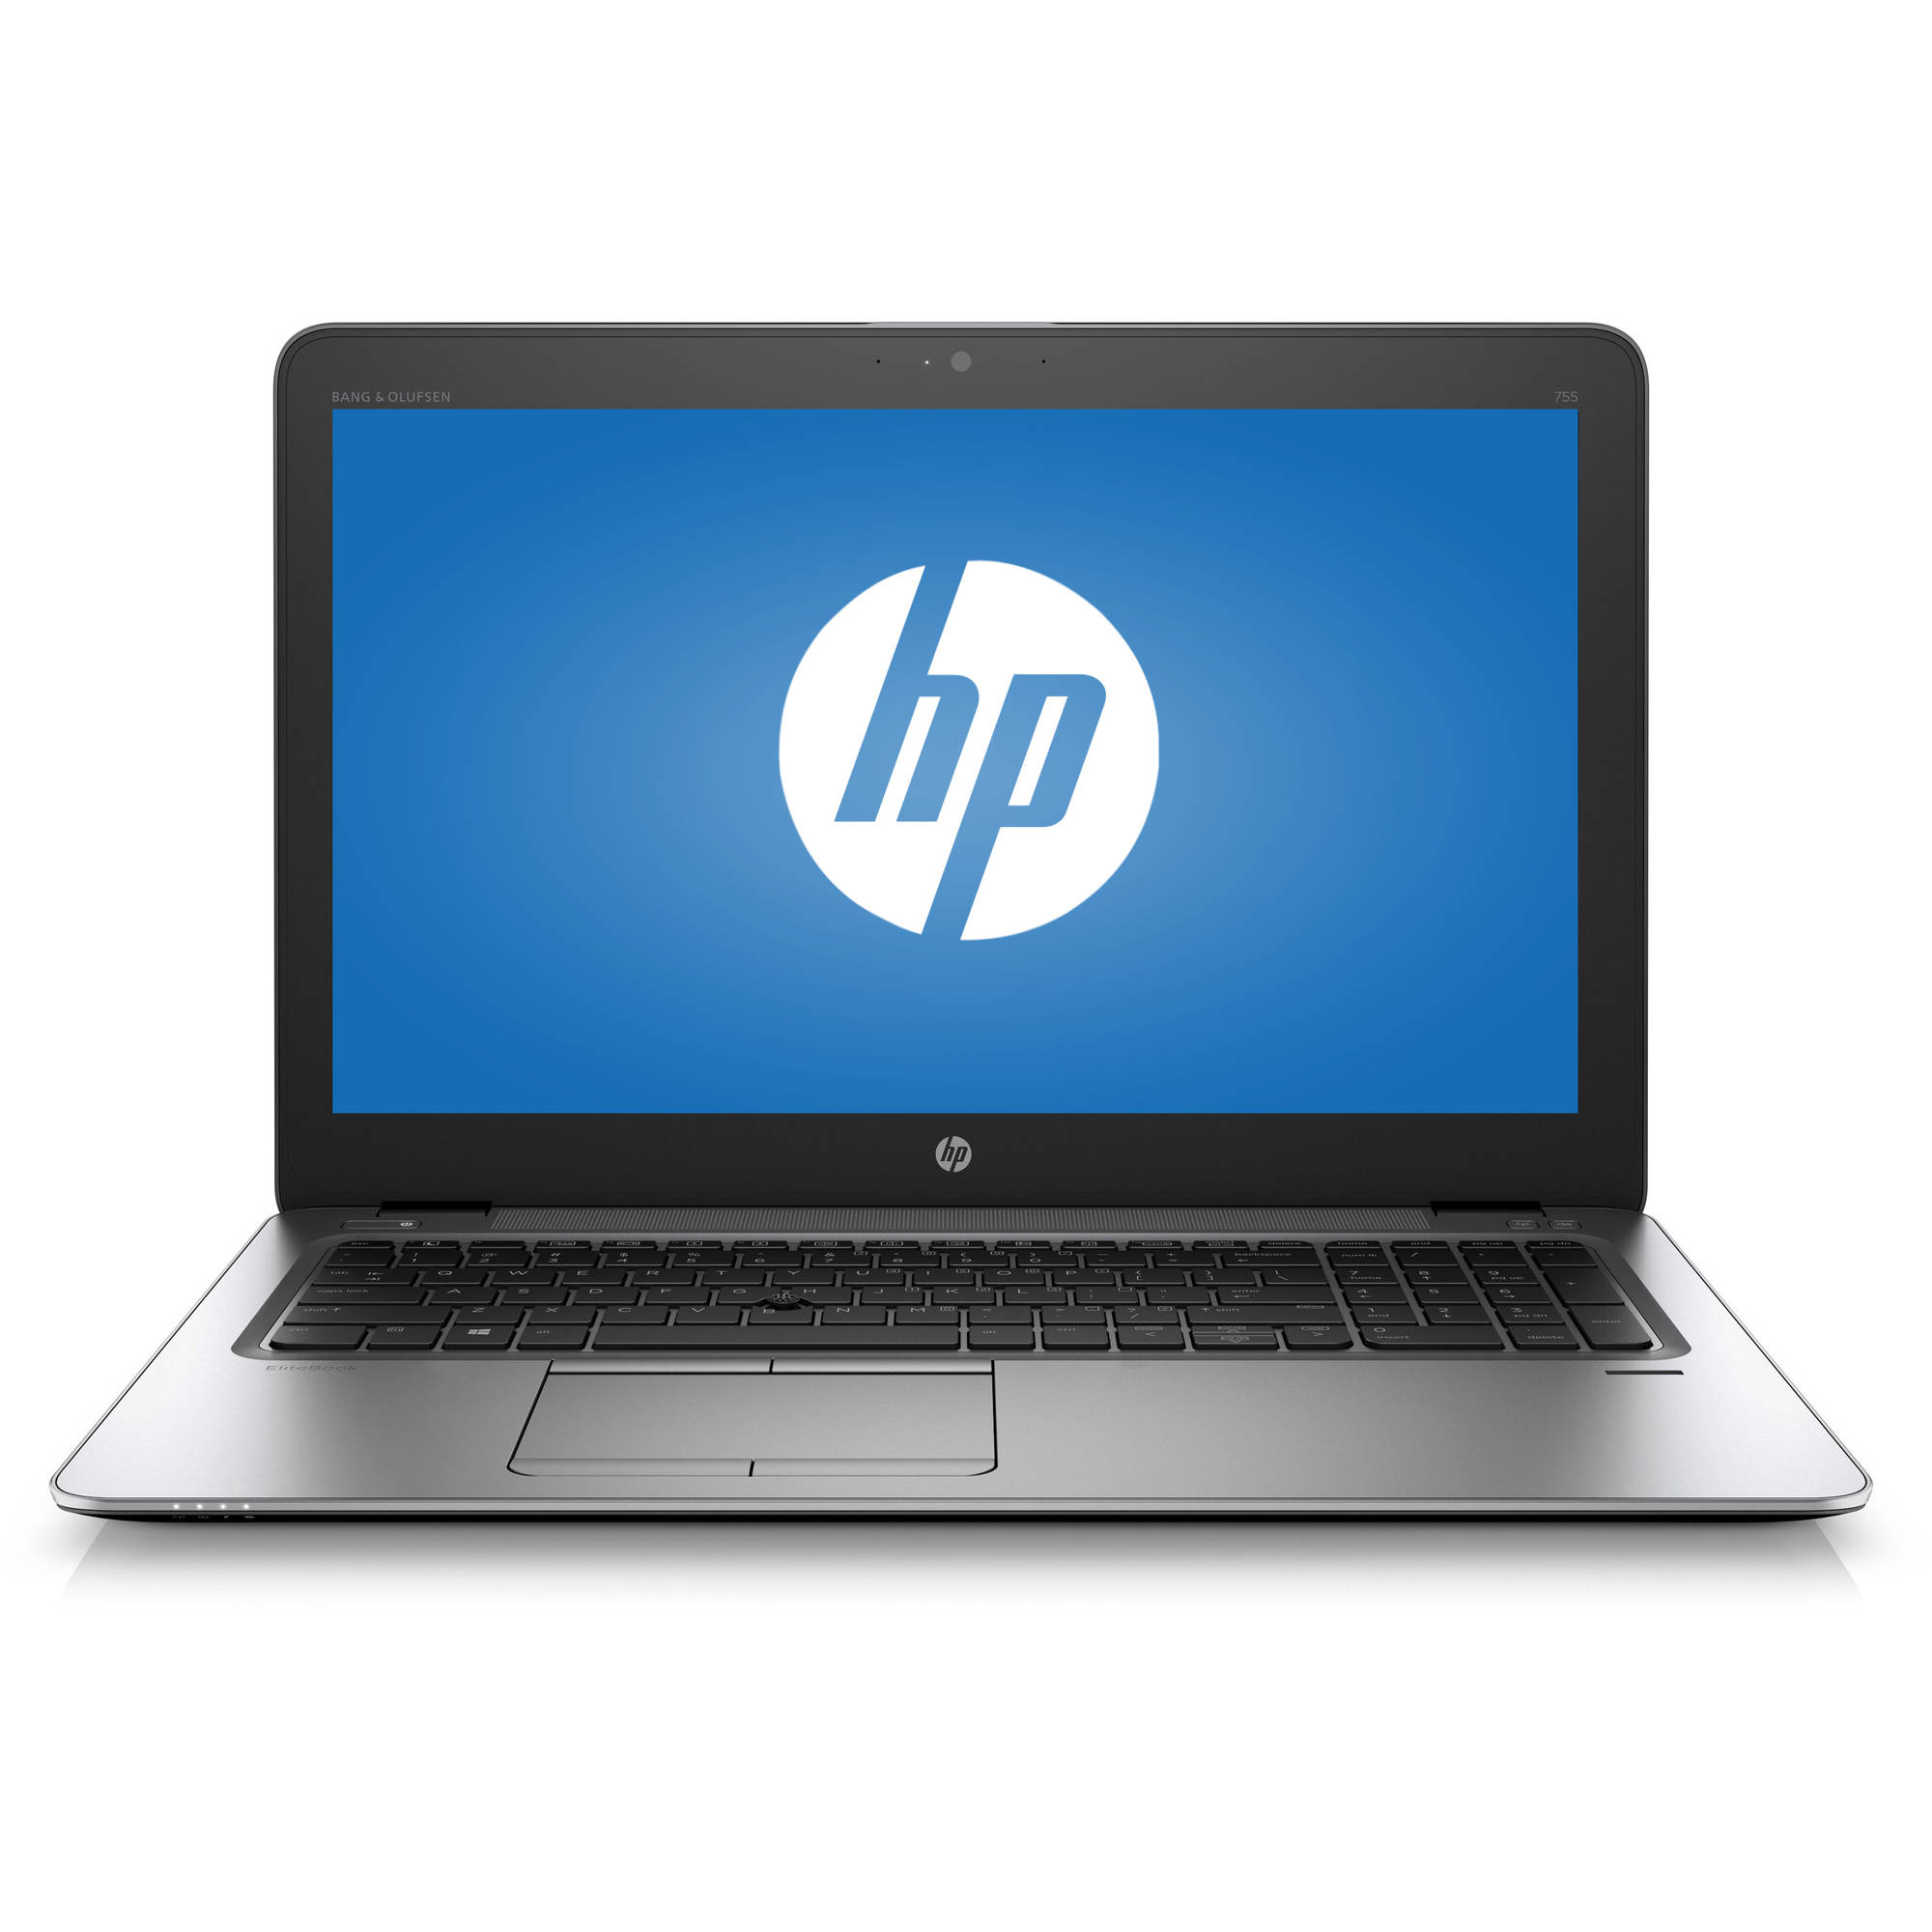 "HP Silver 15.6"" EliteBook 755 G3 Laptop PC with AMD A12-8800B Quad-Core Processor, 8GB Memory, touch screen, 256GB Solid State Drive and Windows 7 Professional"